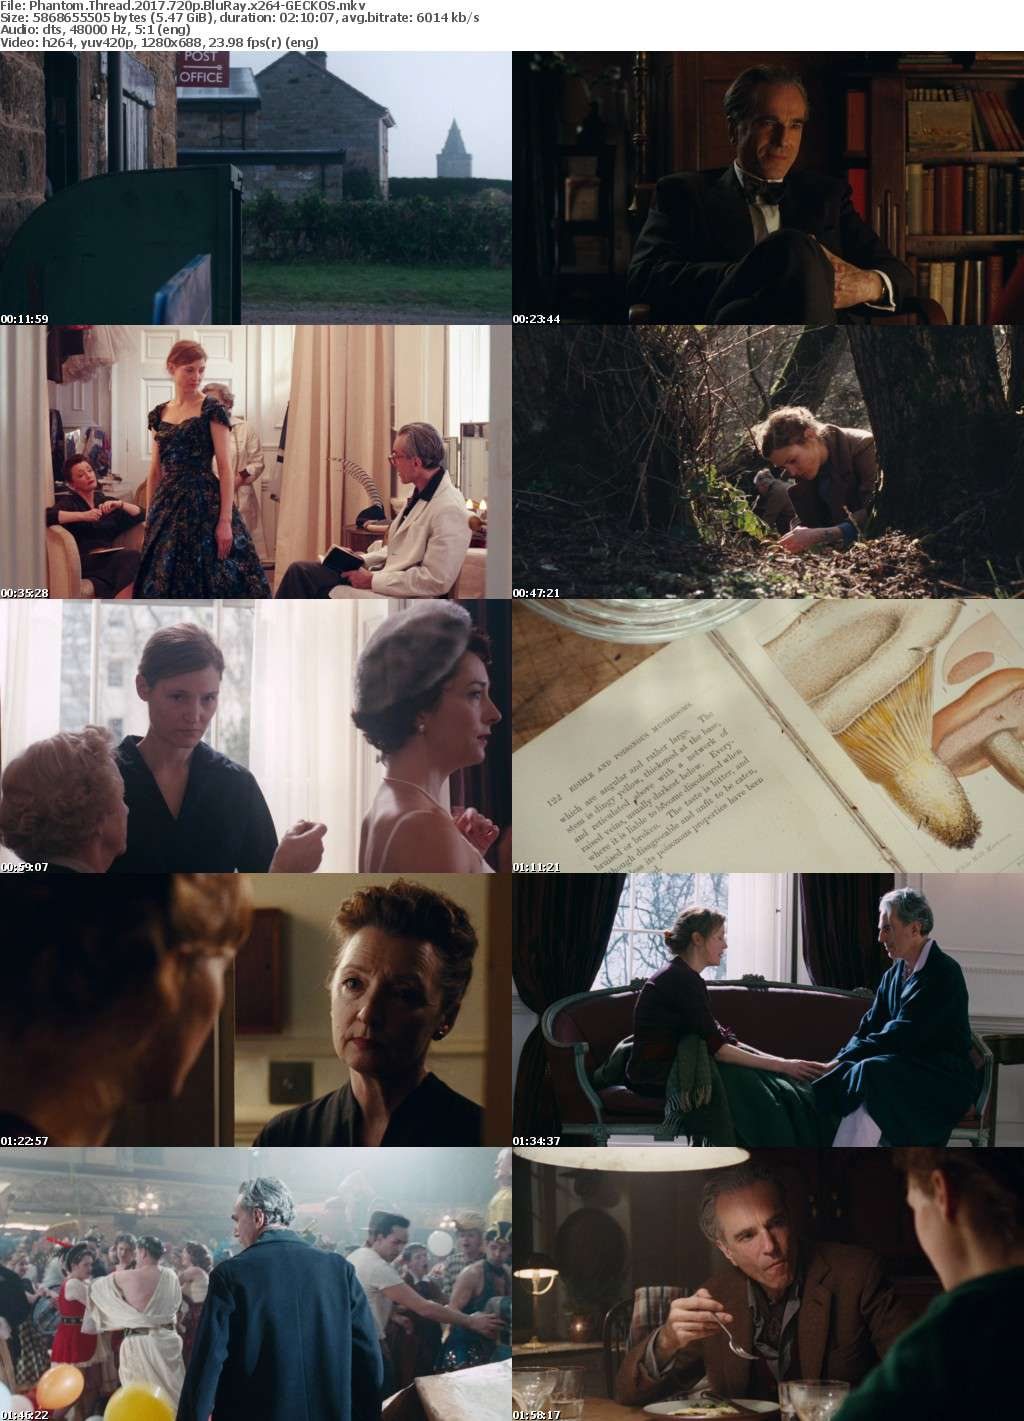 Phantom Thread 2017 720p BluRay x264-GECKOS